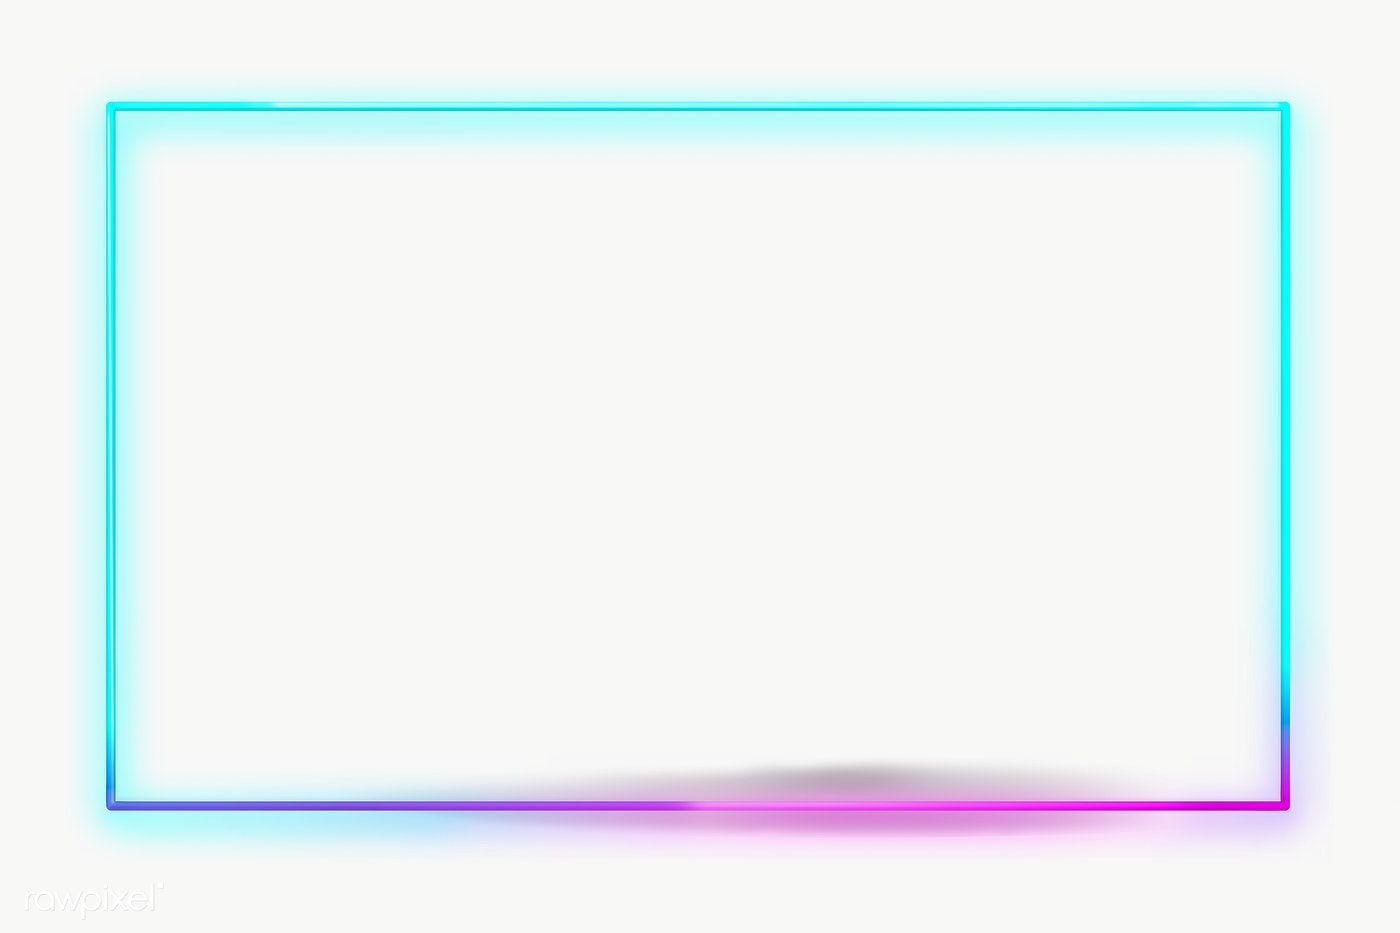 Blue Neon Frame Design Element Free Image By Rawpixel Com Busbus Frame Design Design Element Blue Picture Frames